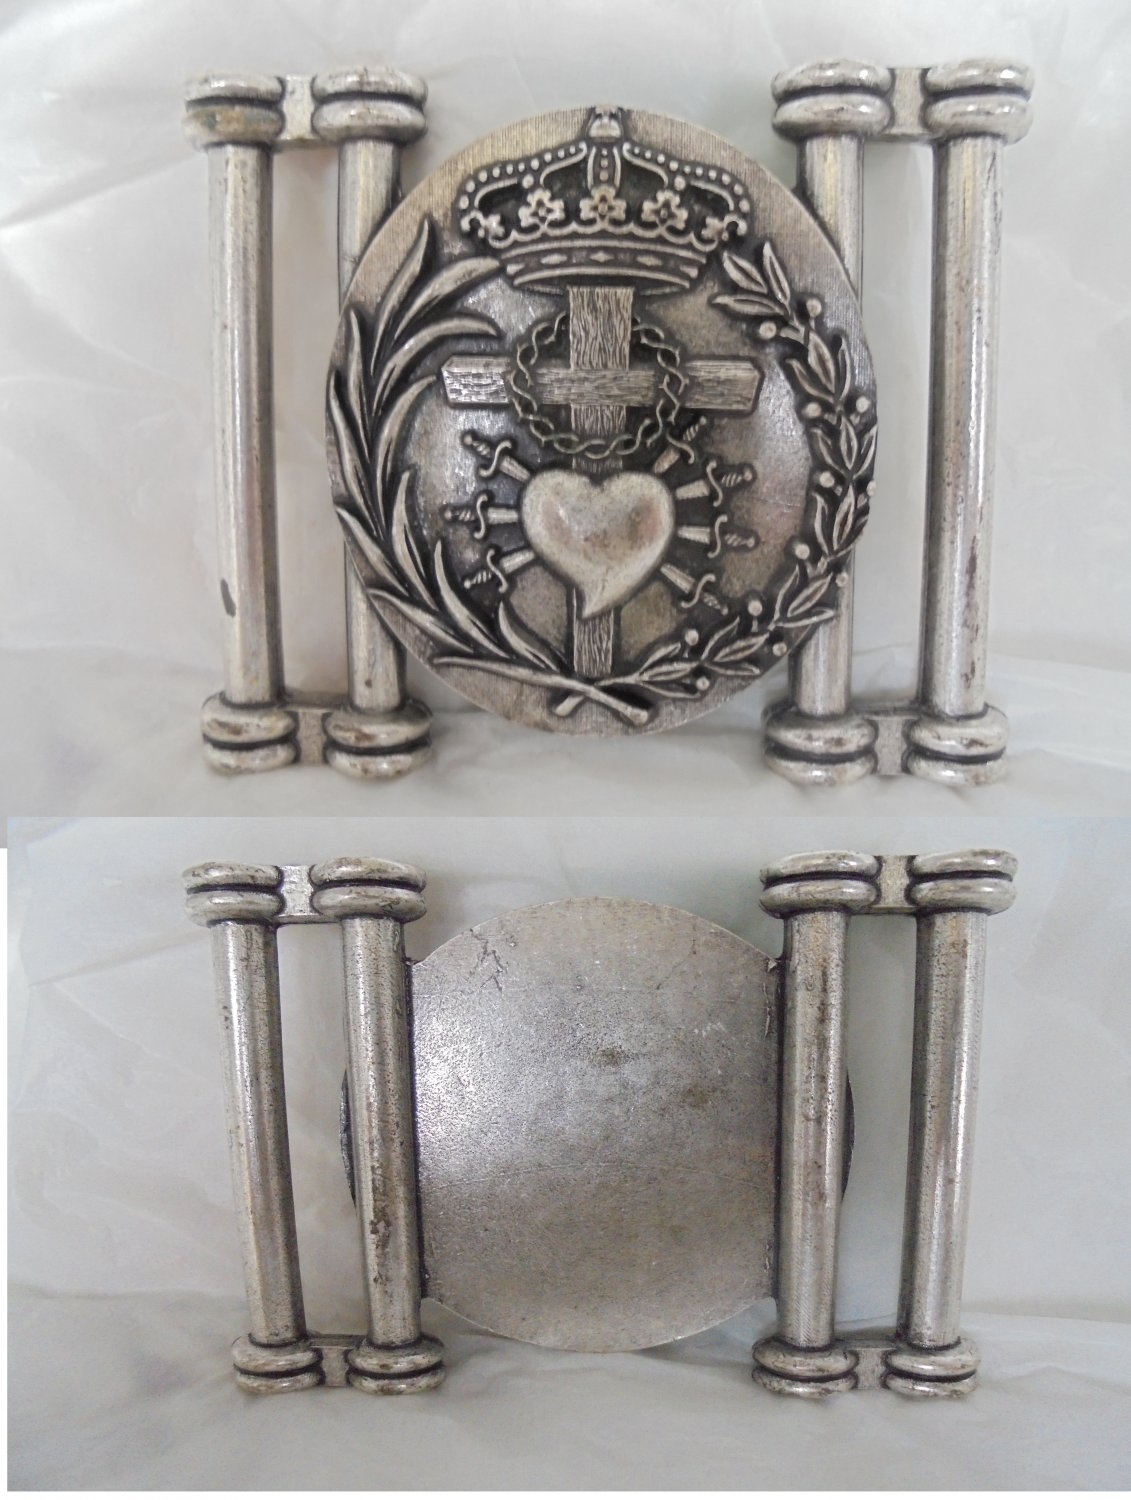 MEDAL or Belt buckle in metal of Our Lady of Sorrows Original 1980s